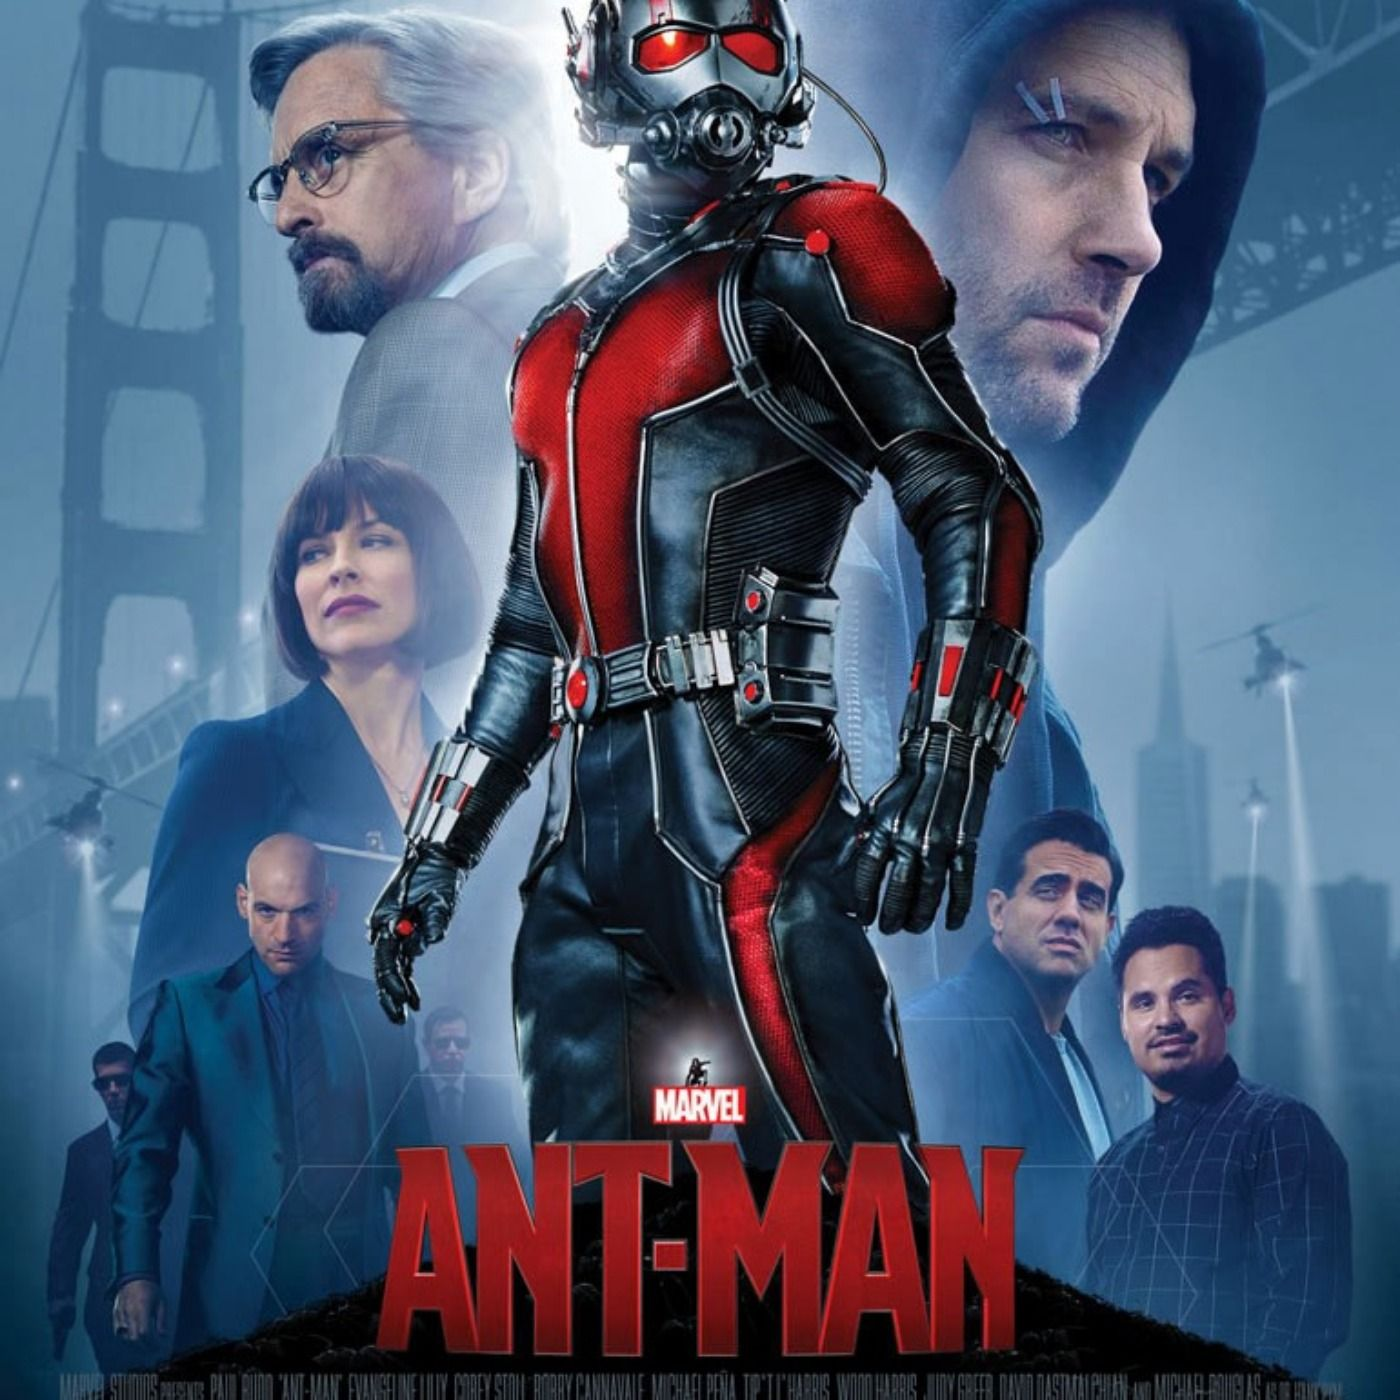 Critique du film ANT-MAN | Saga Marvel